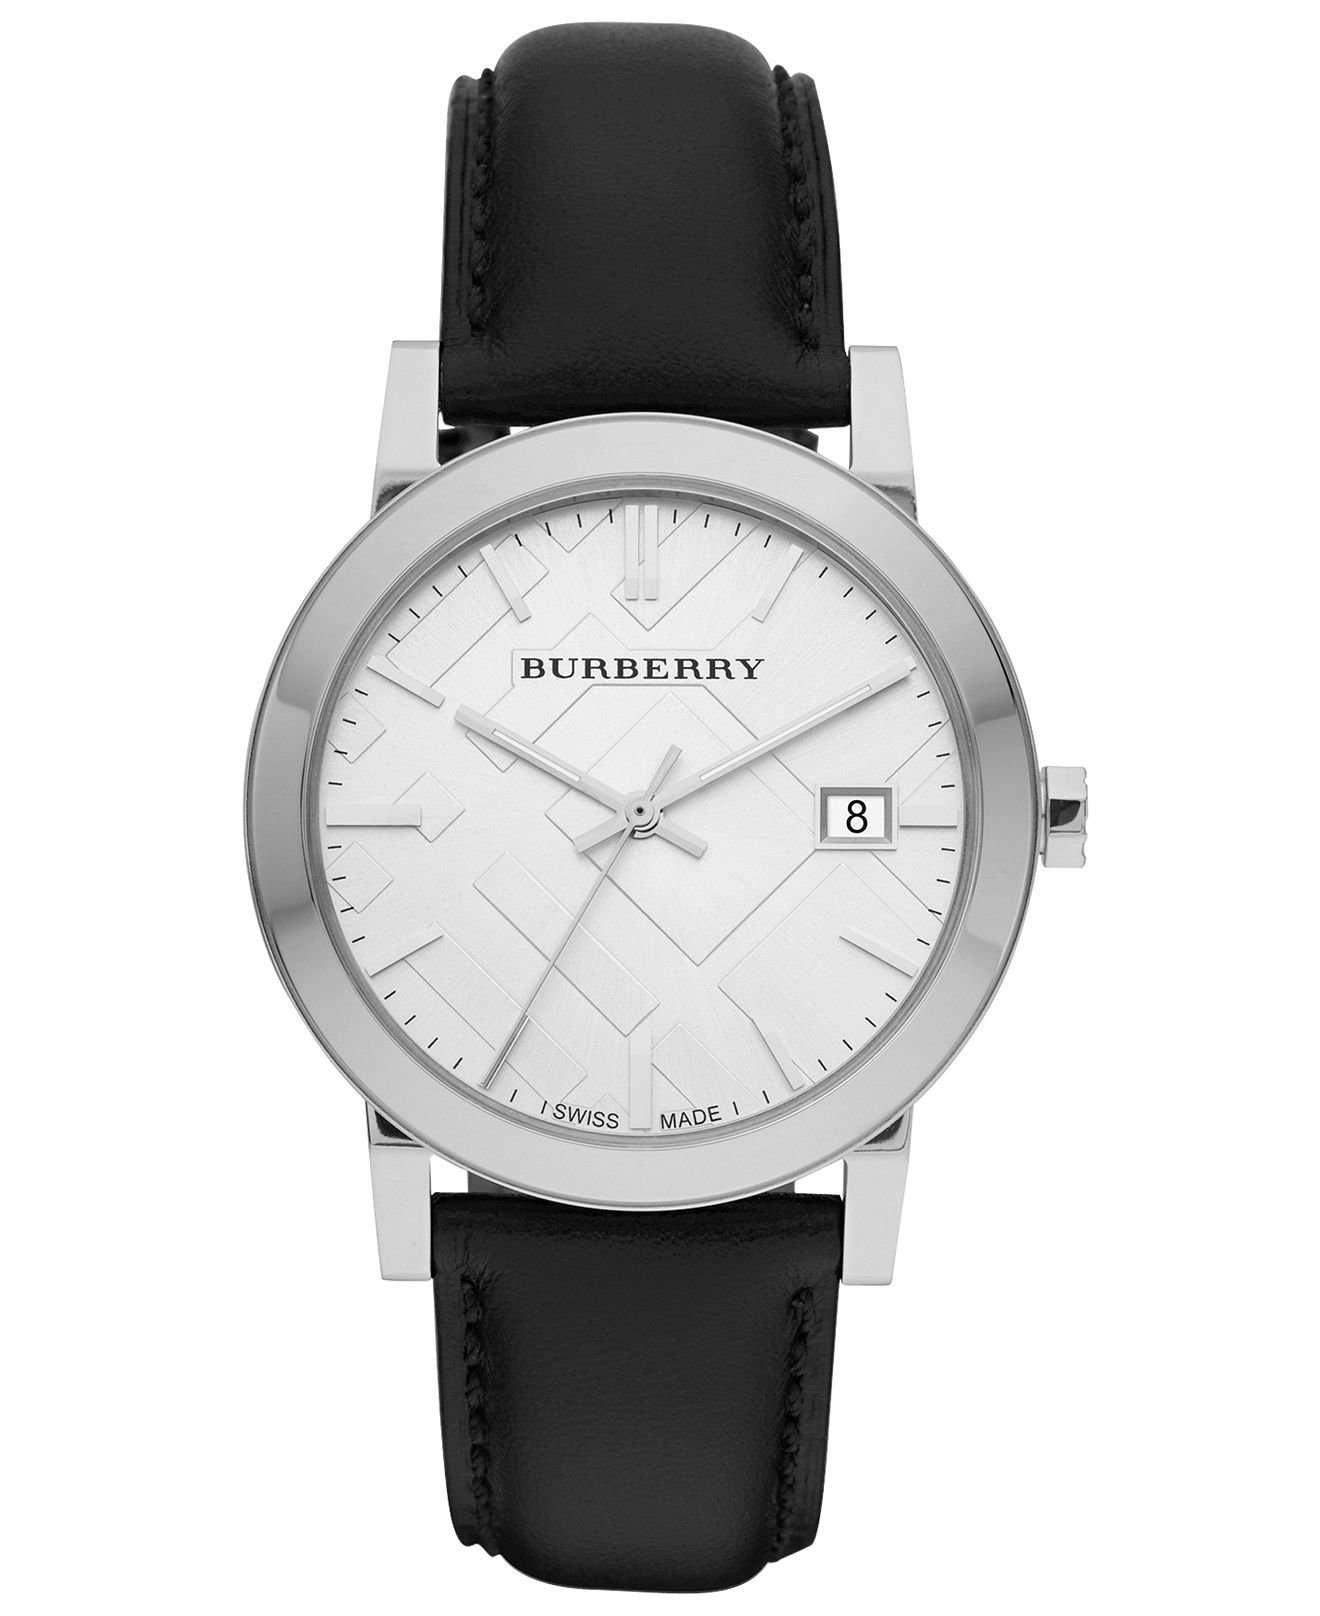 burberry s swiss smooth black from macys